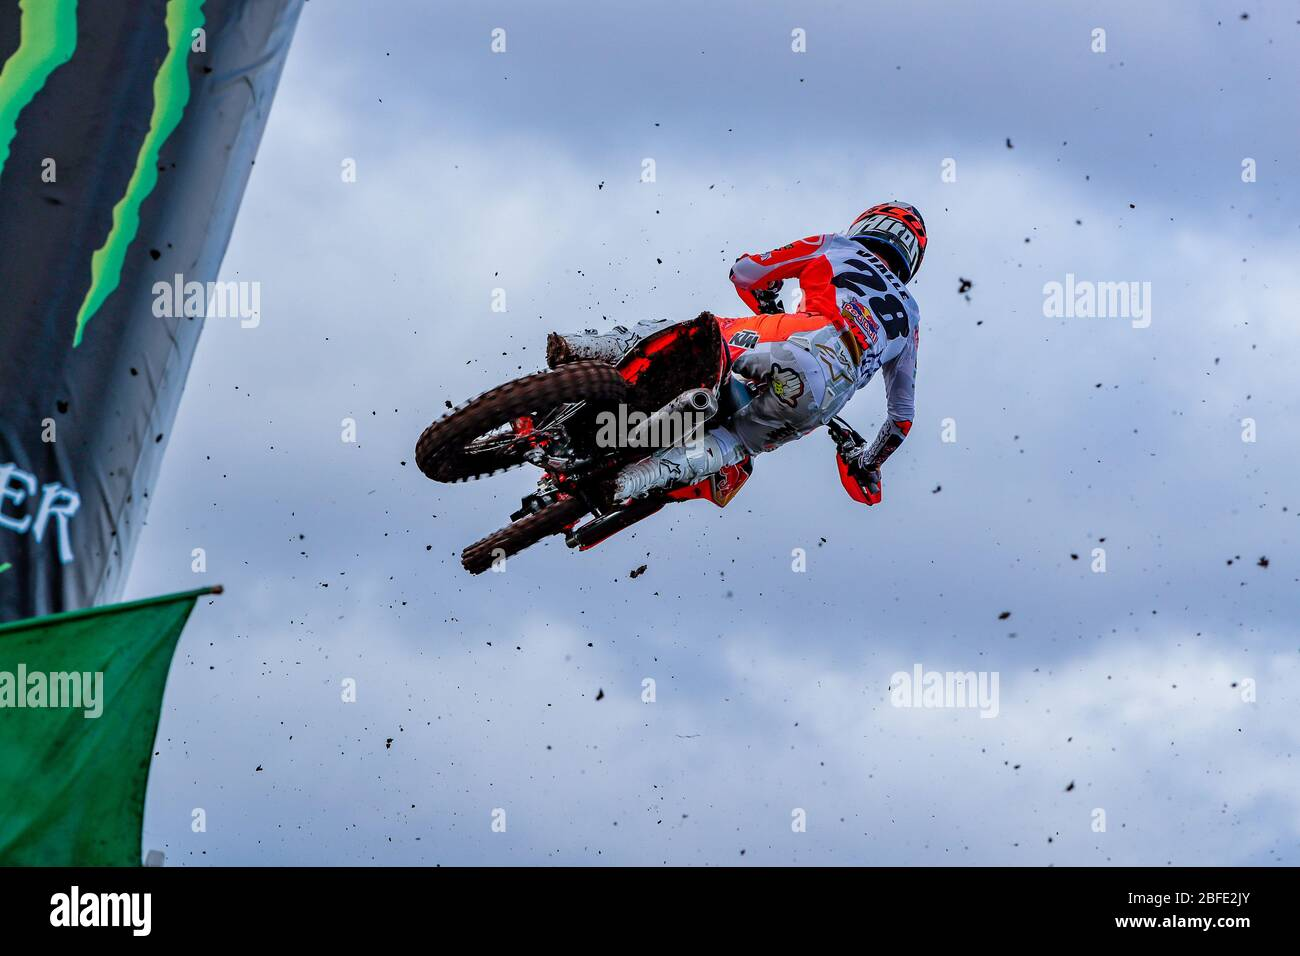 Winchester, Italy. 01st Mar, 2020. tom vialle (fra) team ktm factory racing during MXGP of Great Britain, Motocross in winchester, Italy, March 01 2020 Credit: Independent Photo Agency/Alamy Live News Stock Photo